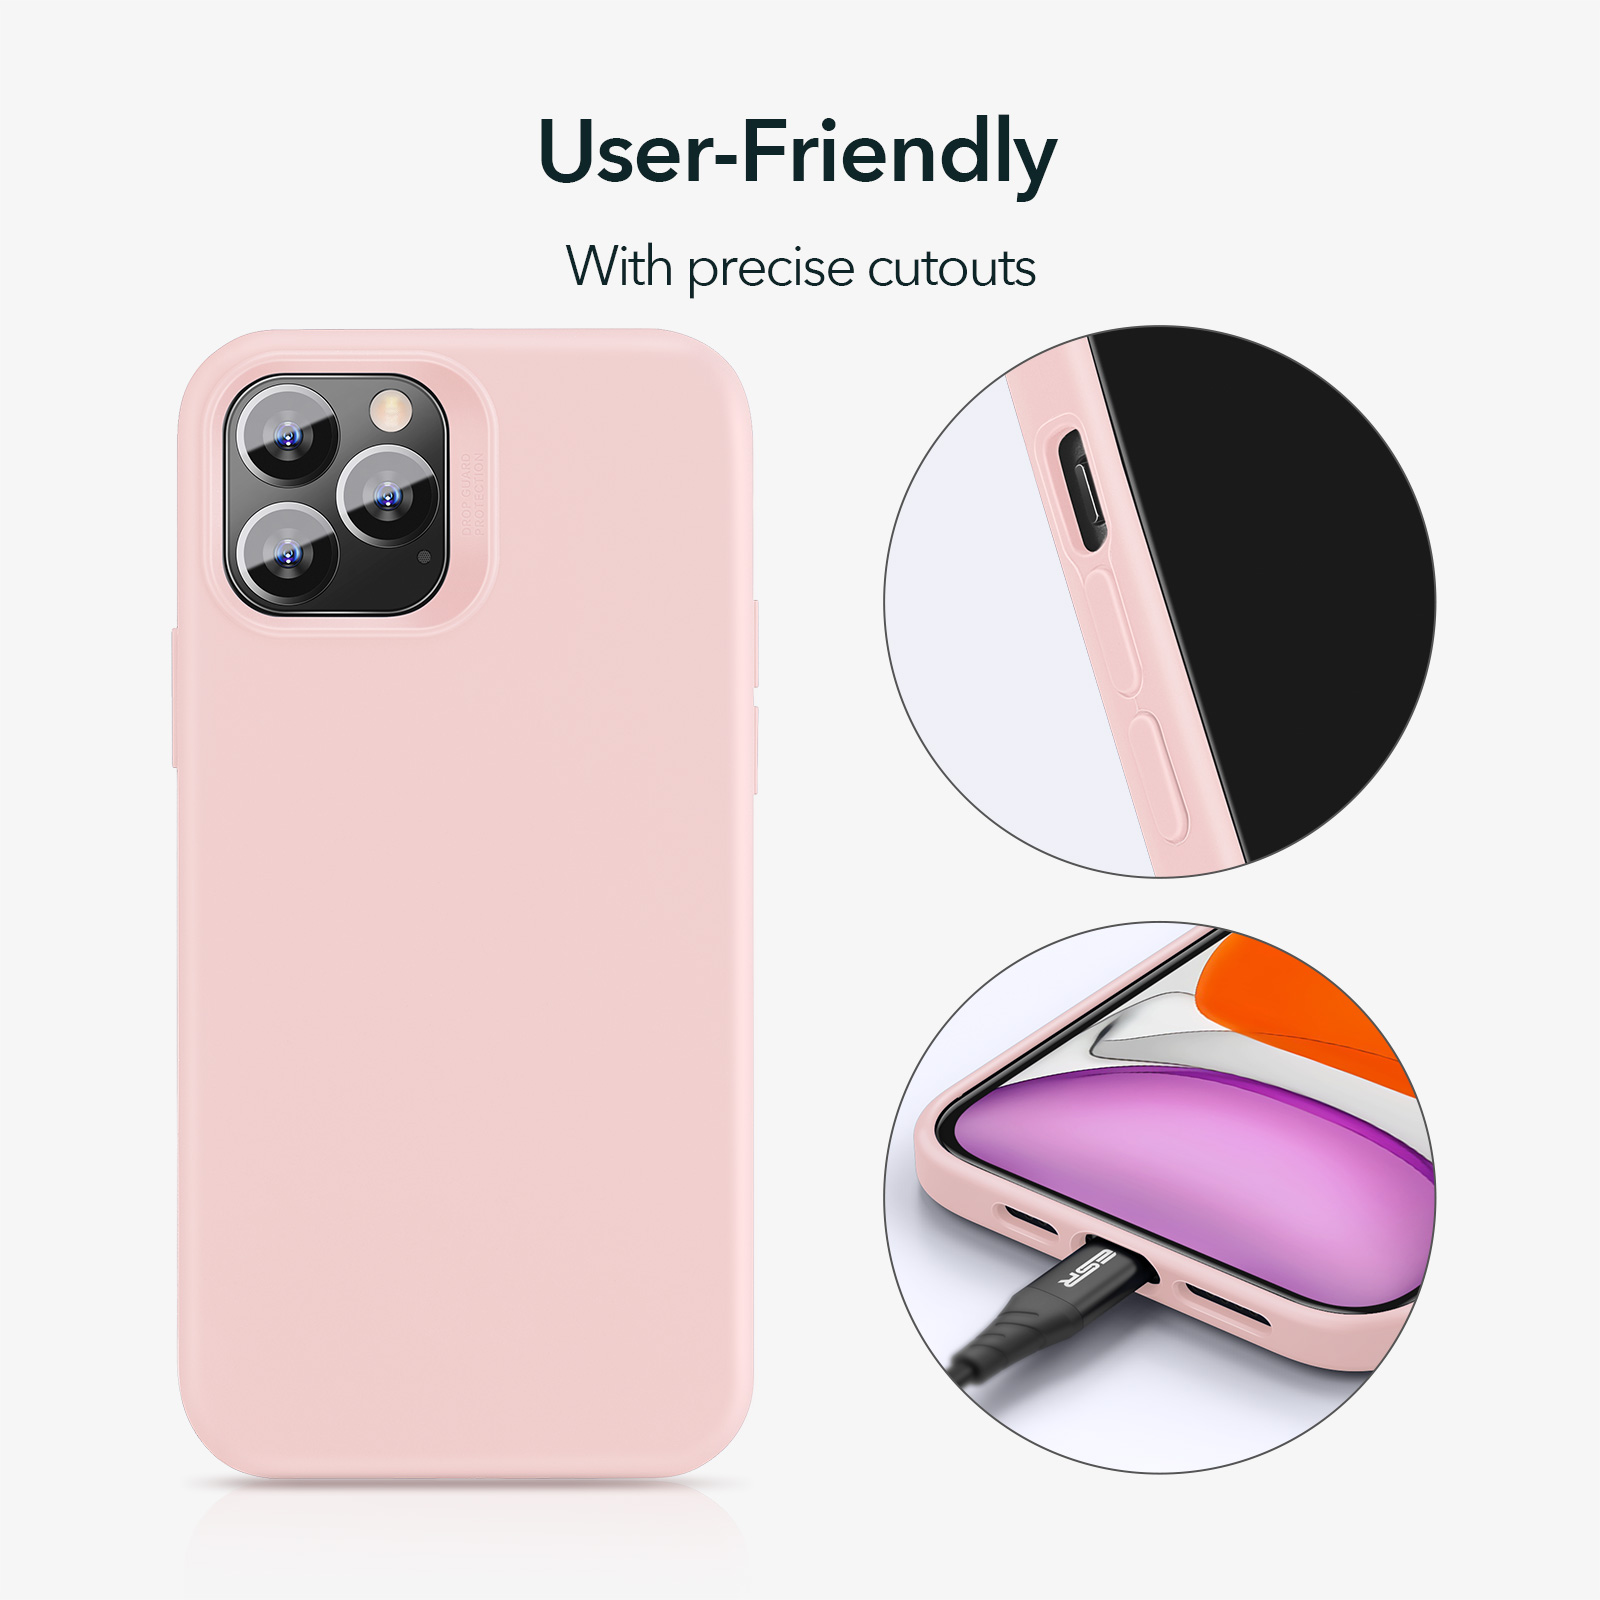 ESR Soft Silicone Case with precise cutouts Sand Pink for iPhone 12